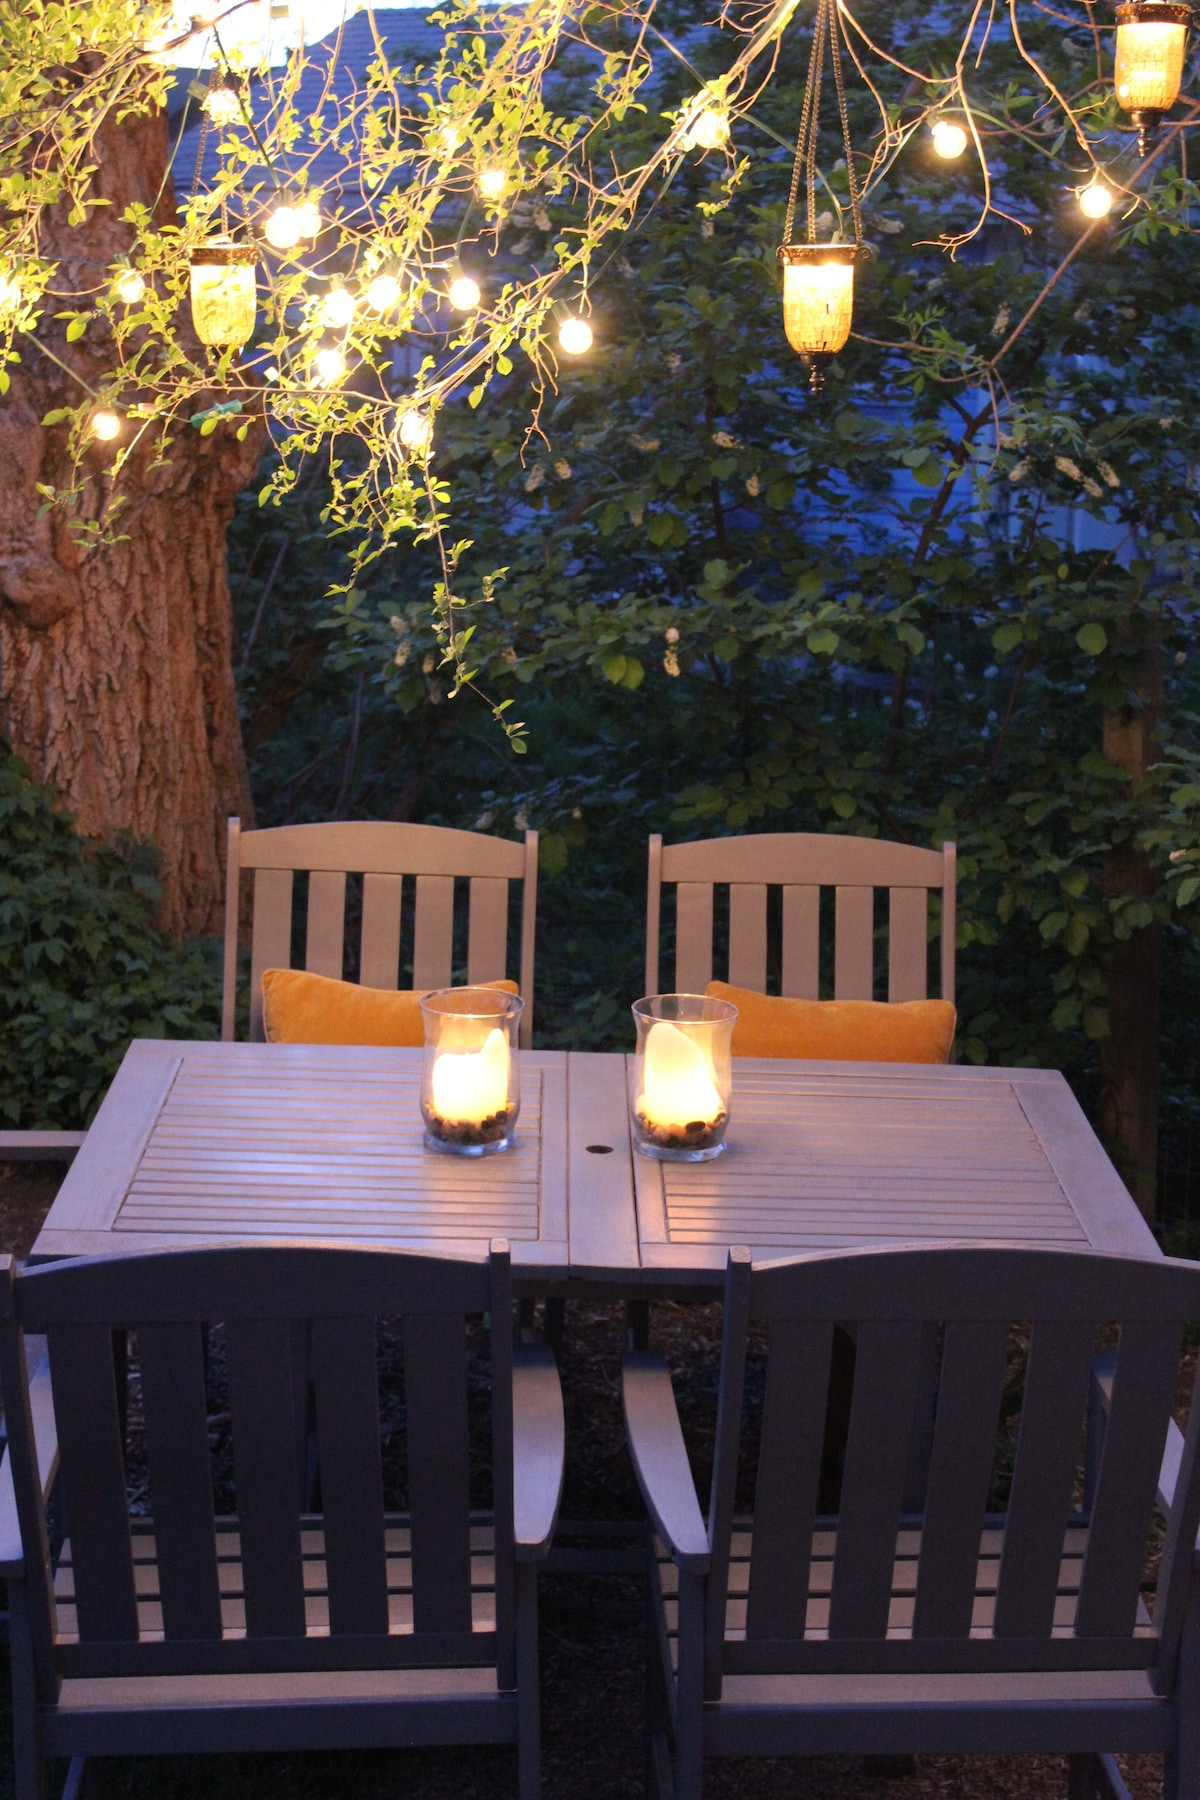 Have dinner outside under the romantic lights